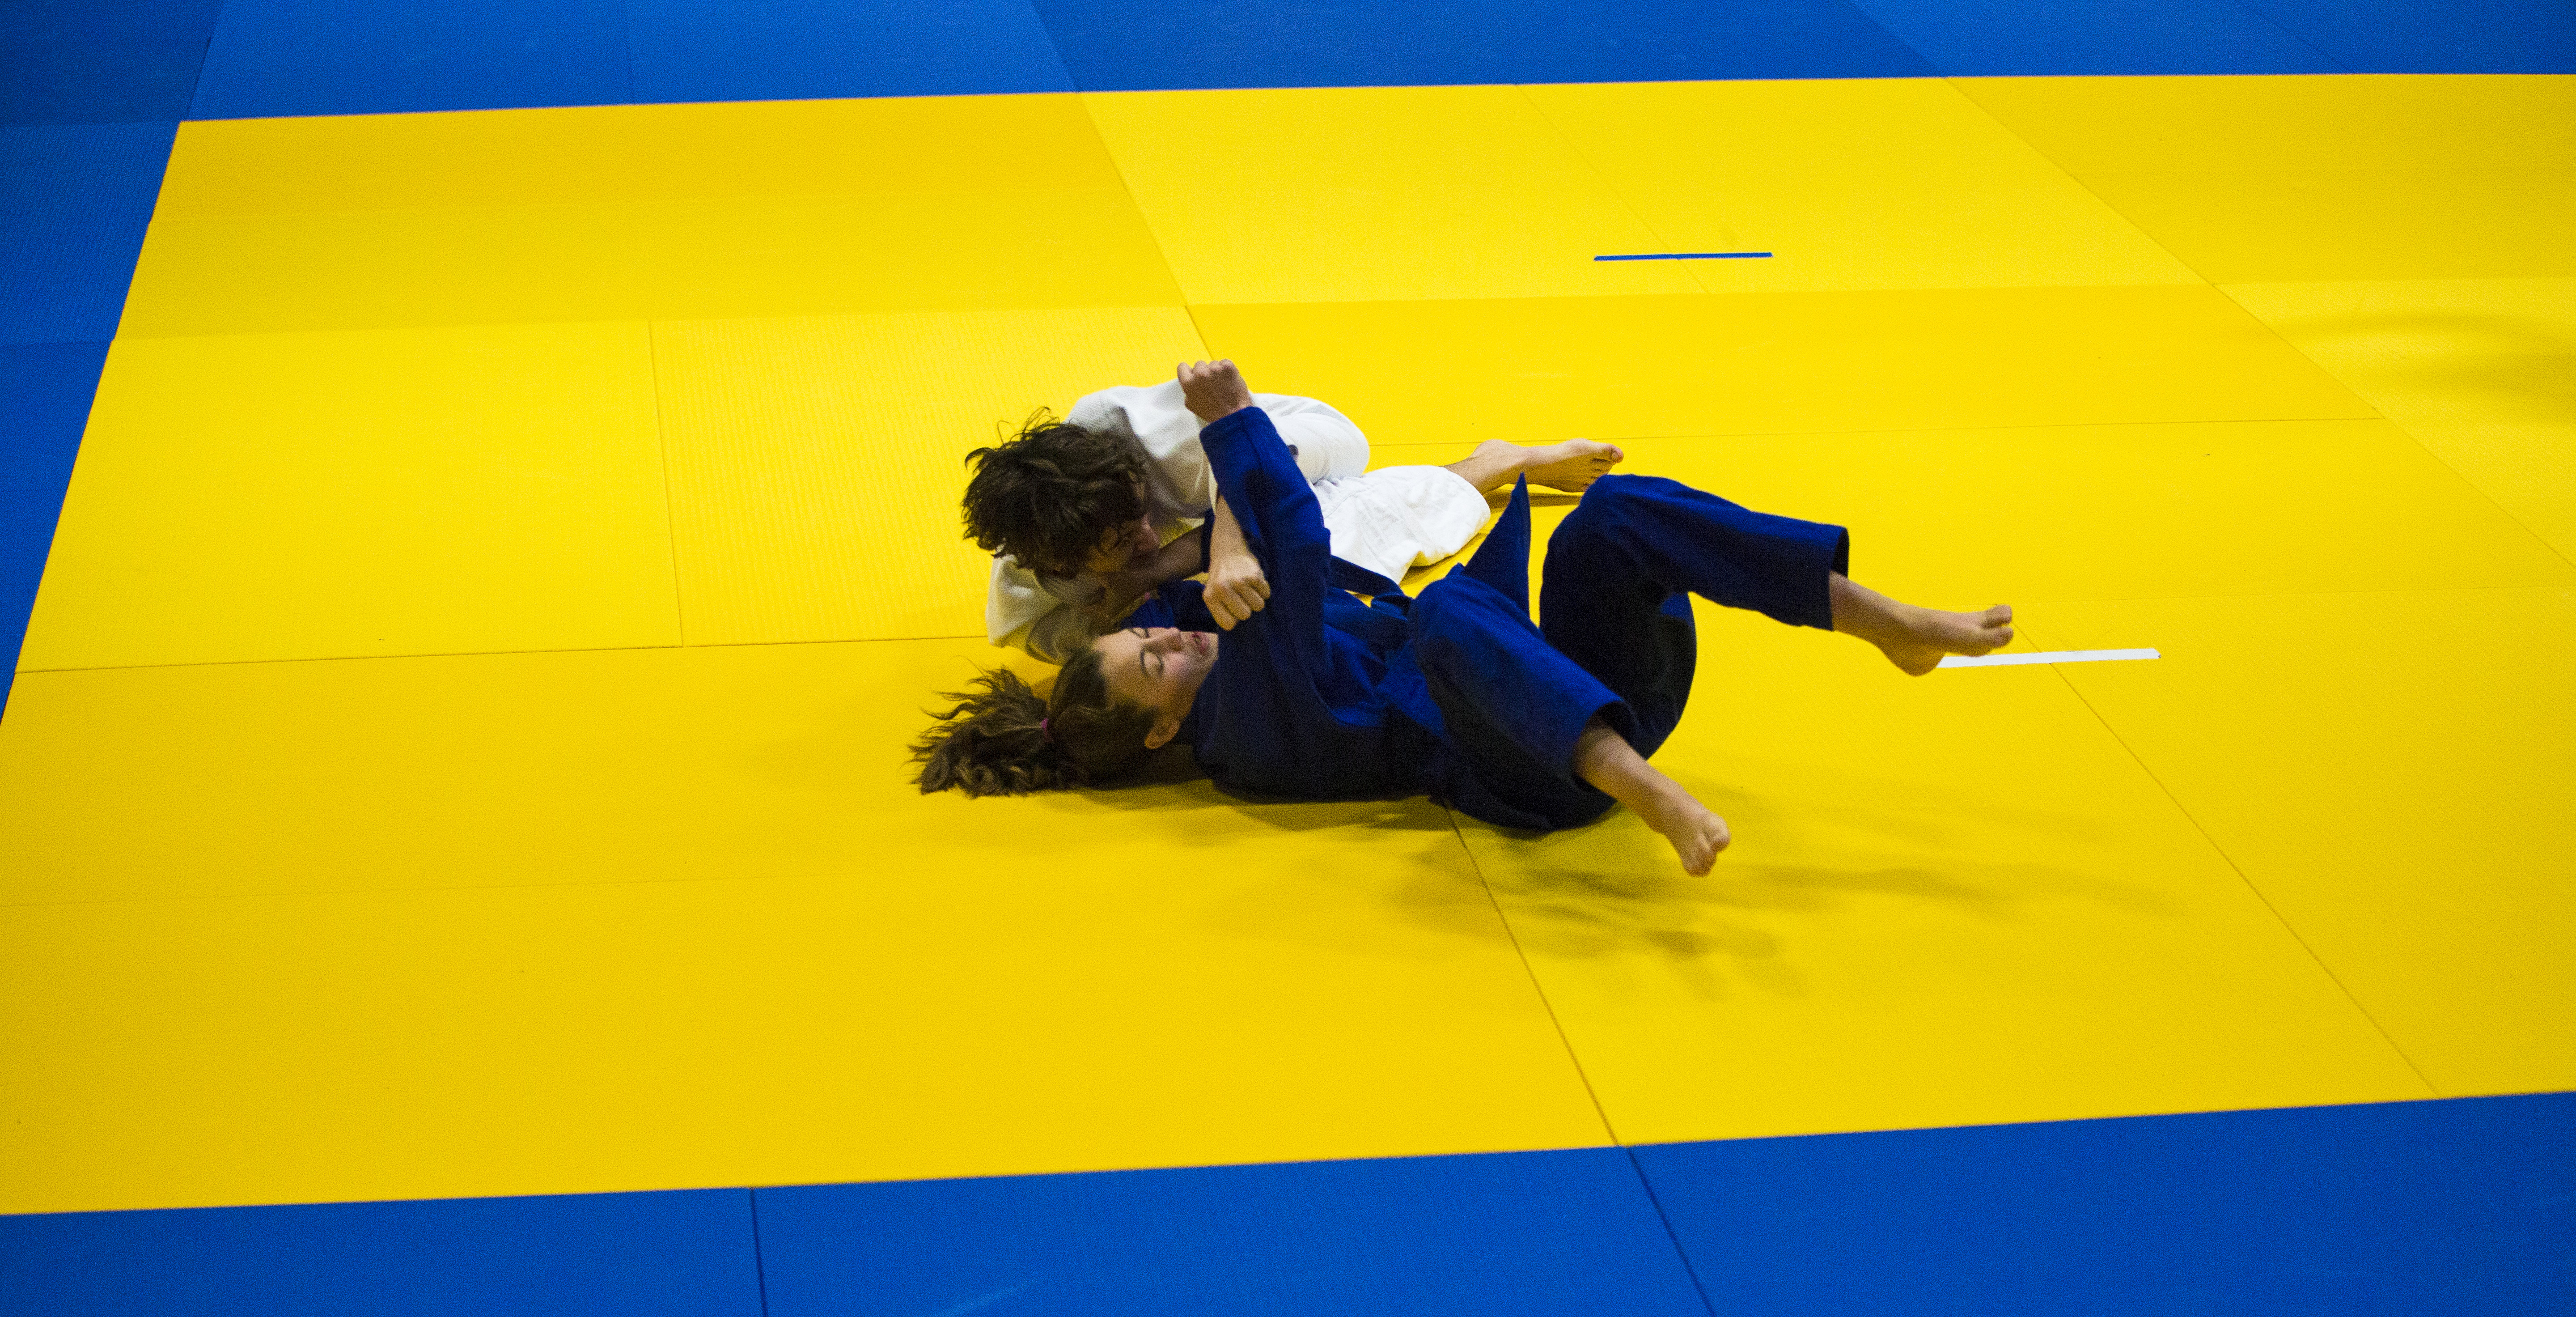 Cassi Jensen and her opponent tangle limbs during a match. Competitors take part in a judo tournament at Golden Horn Elementary School on Oct. 22, 2016. It was the first tournament of the season. Photo by Marissa Tiel